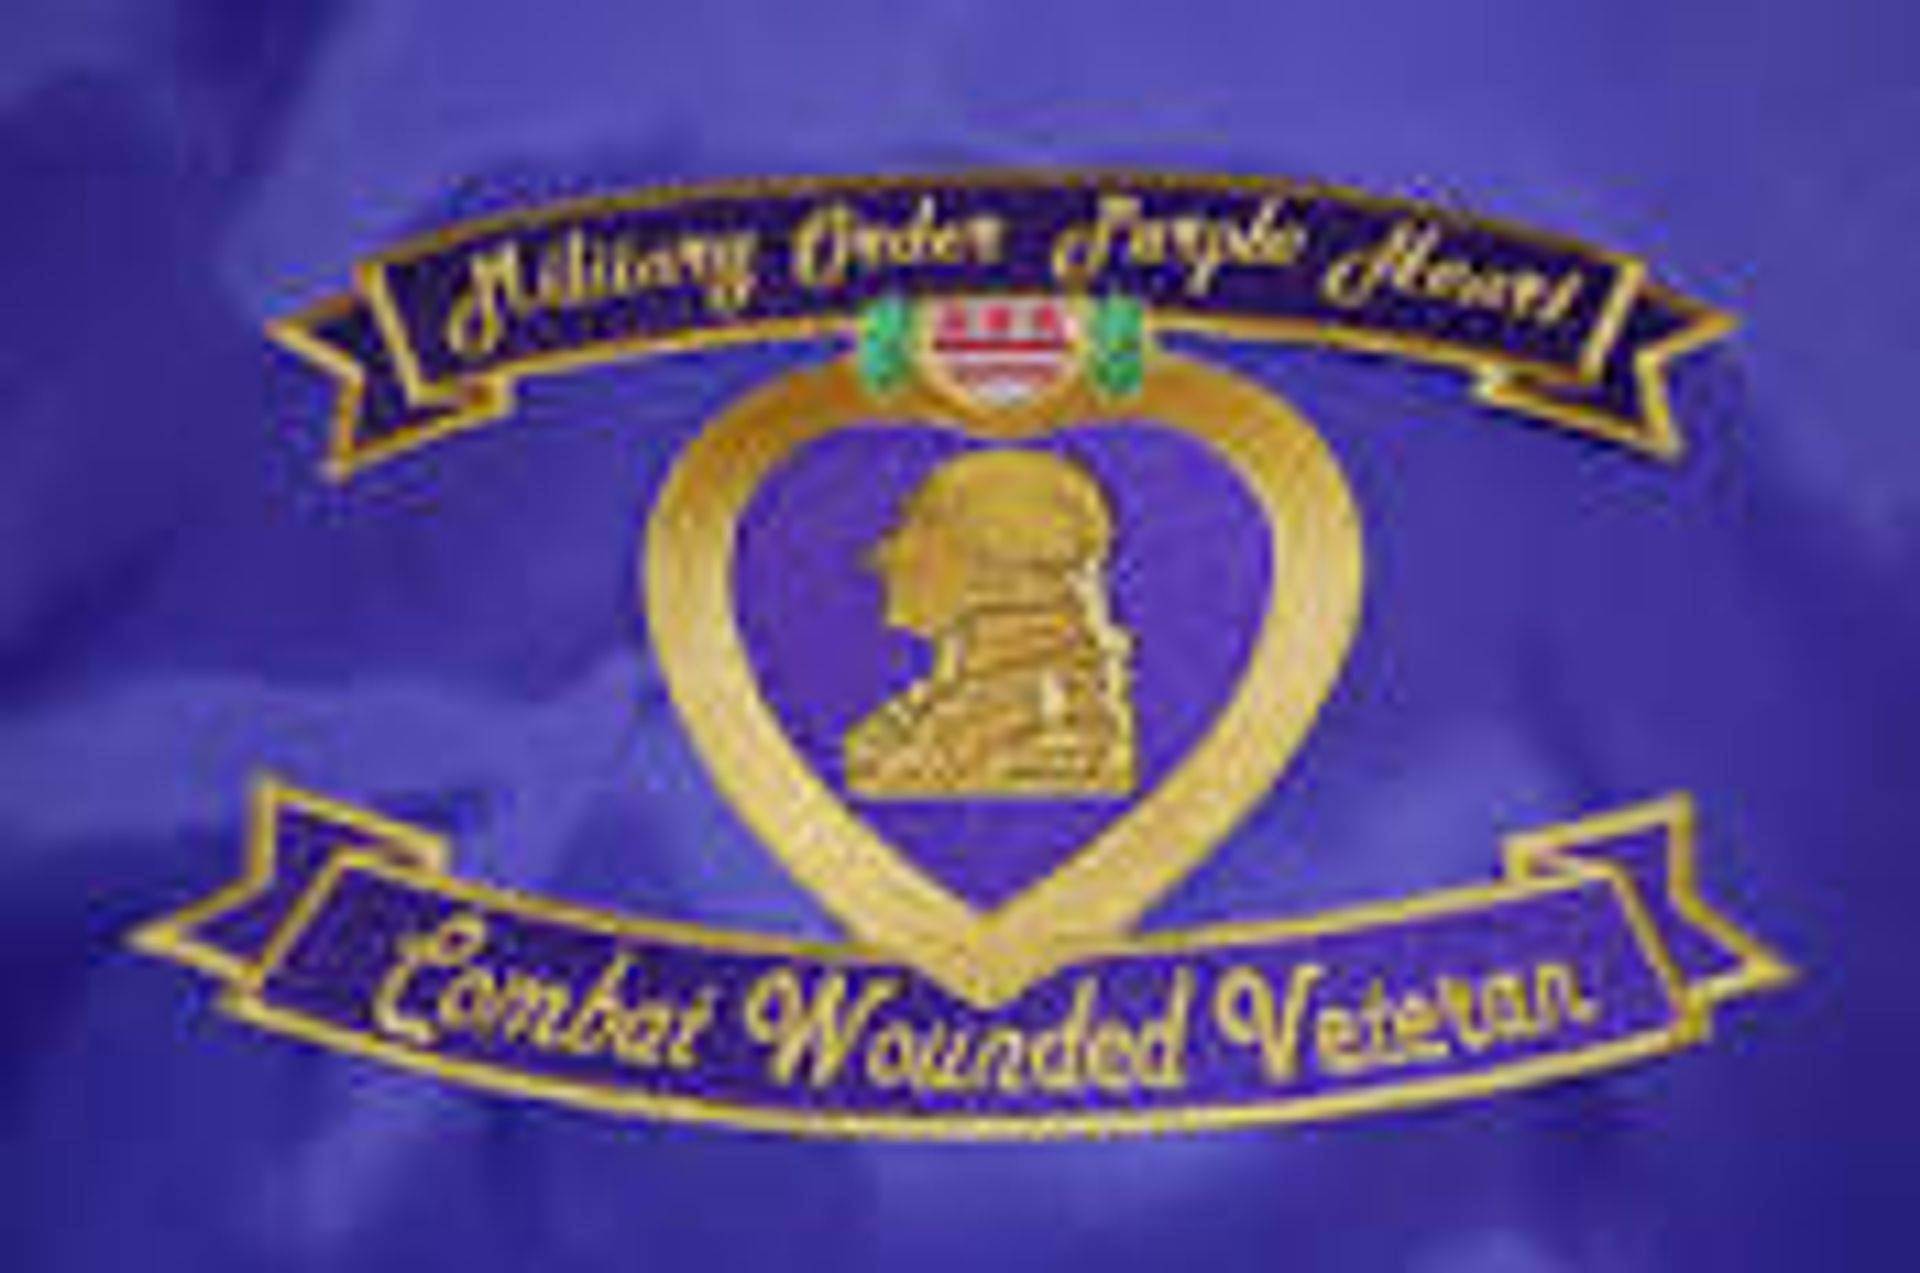 MILITARY ORDER OF THE PURPLE HEART Banner FOR YOUR WEBPAGE